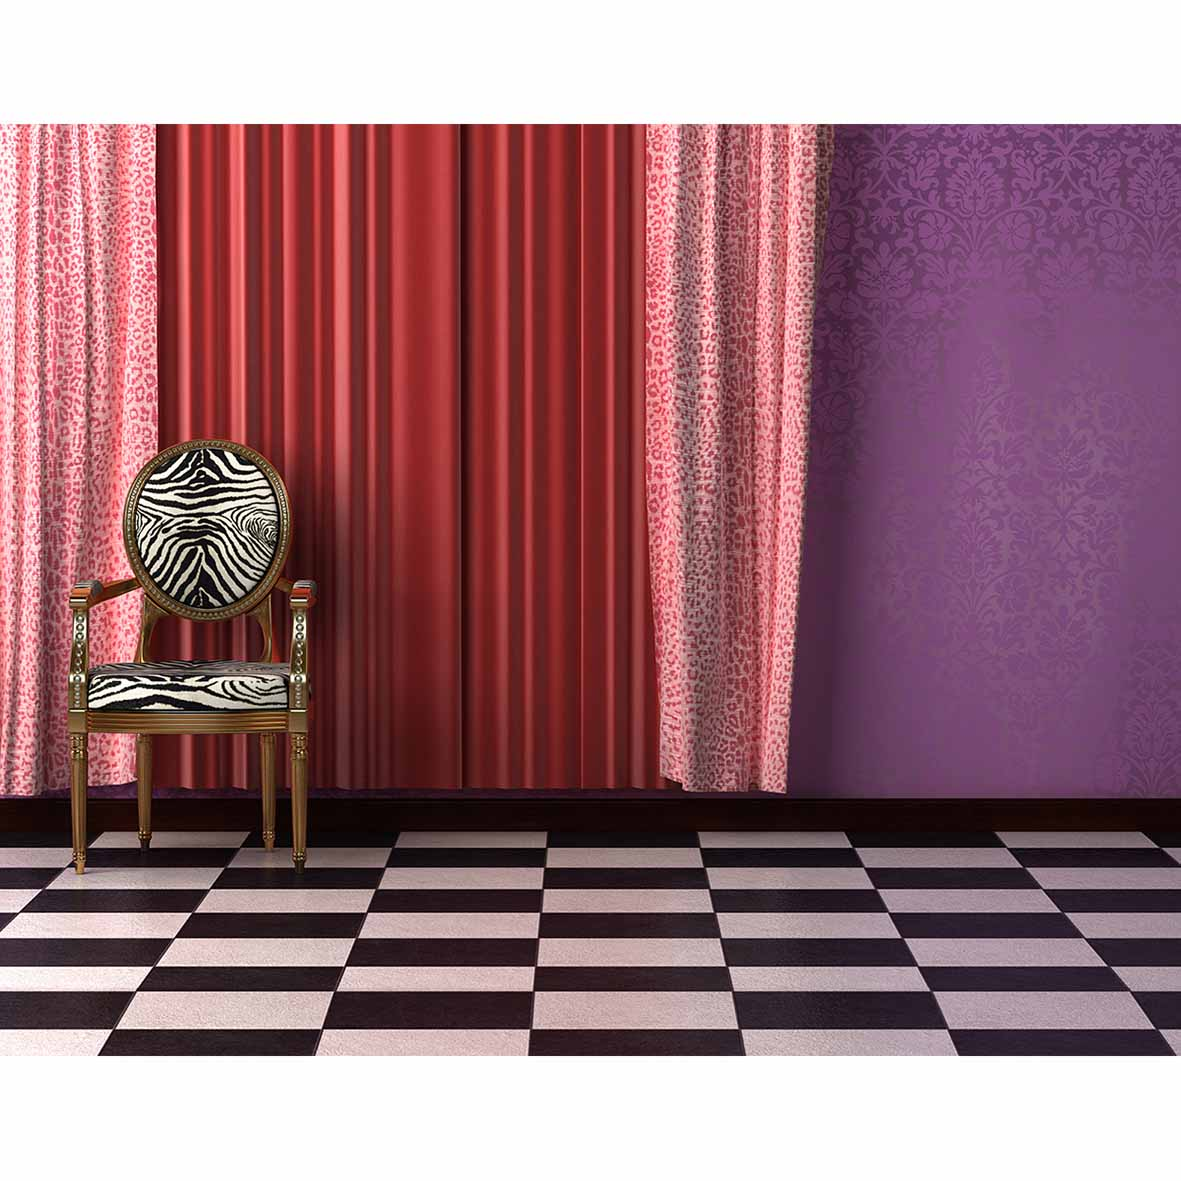 Allenjoy Vinyl Photo Backdrops Fight Black And White Red Purple Armchair  Background Photobooth Fotografica Original Design In Background From  Consumer ...